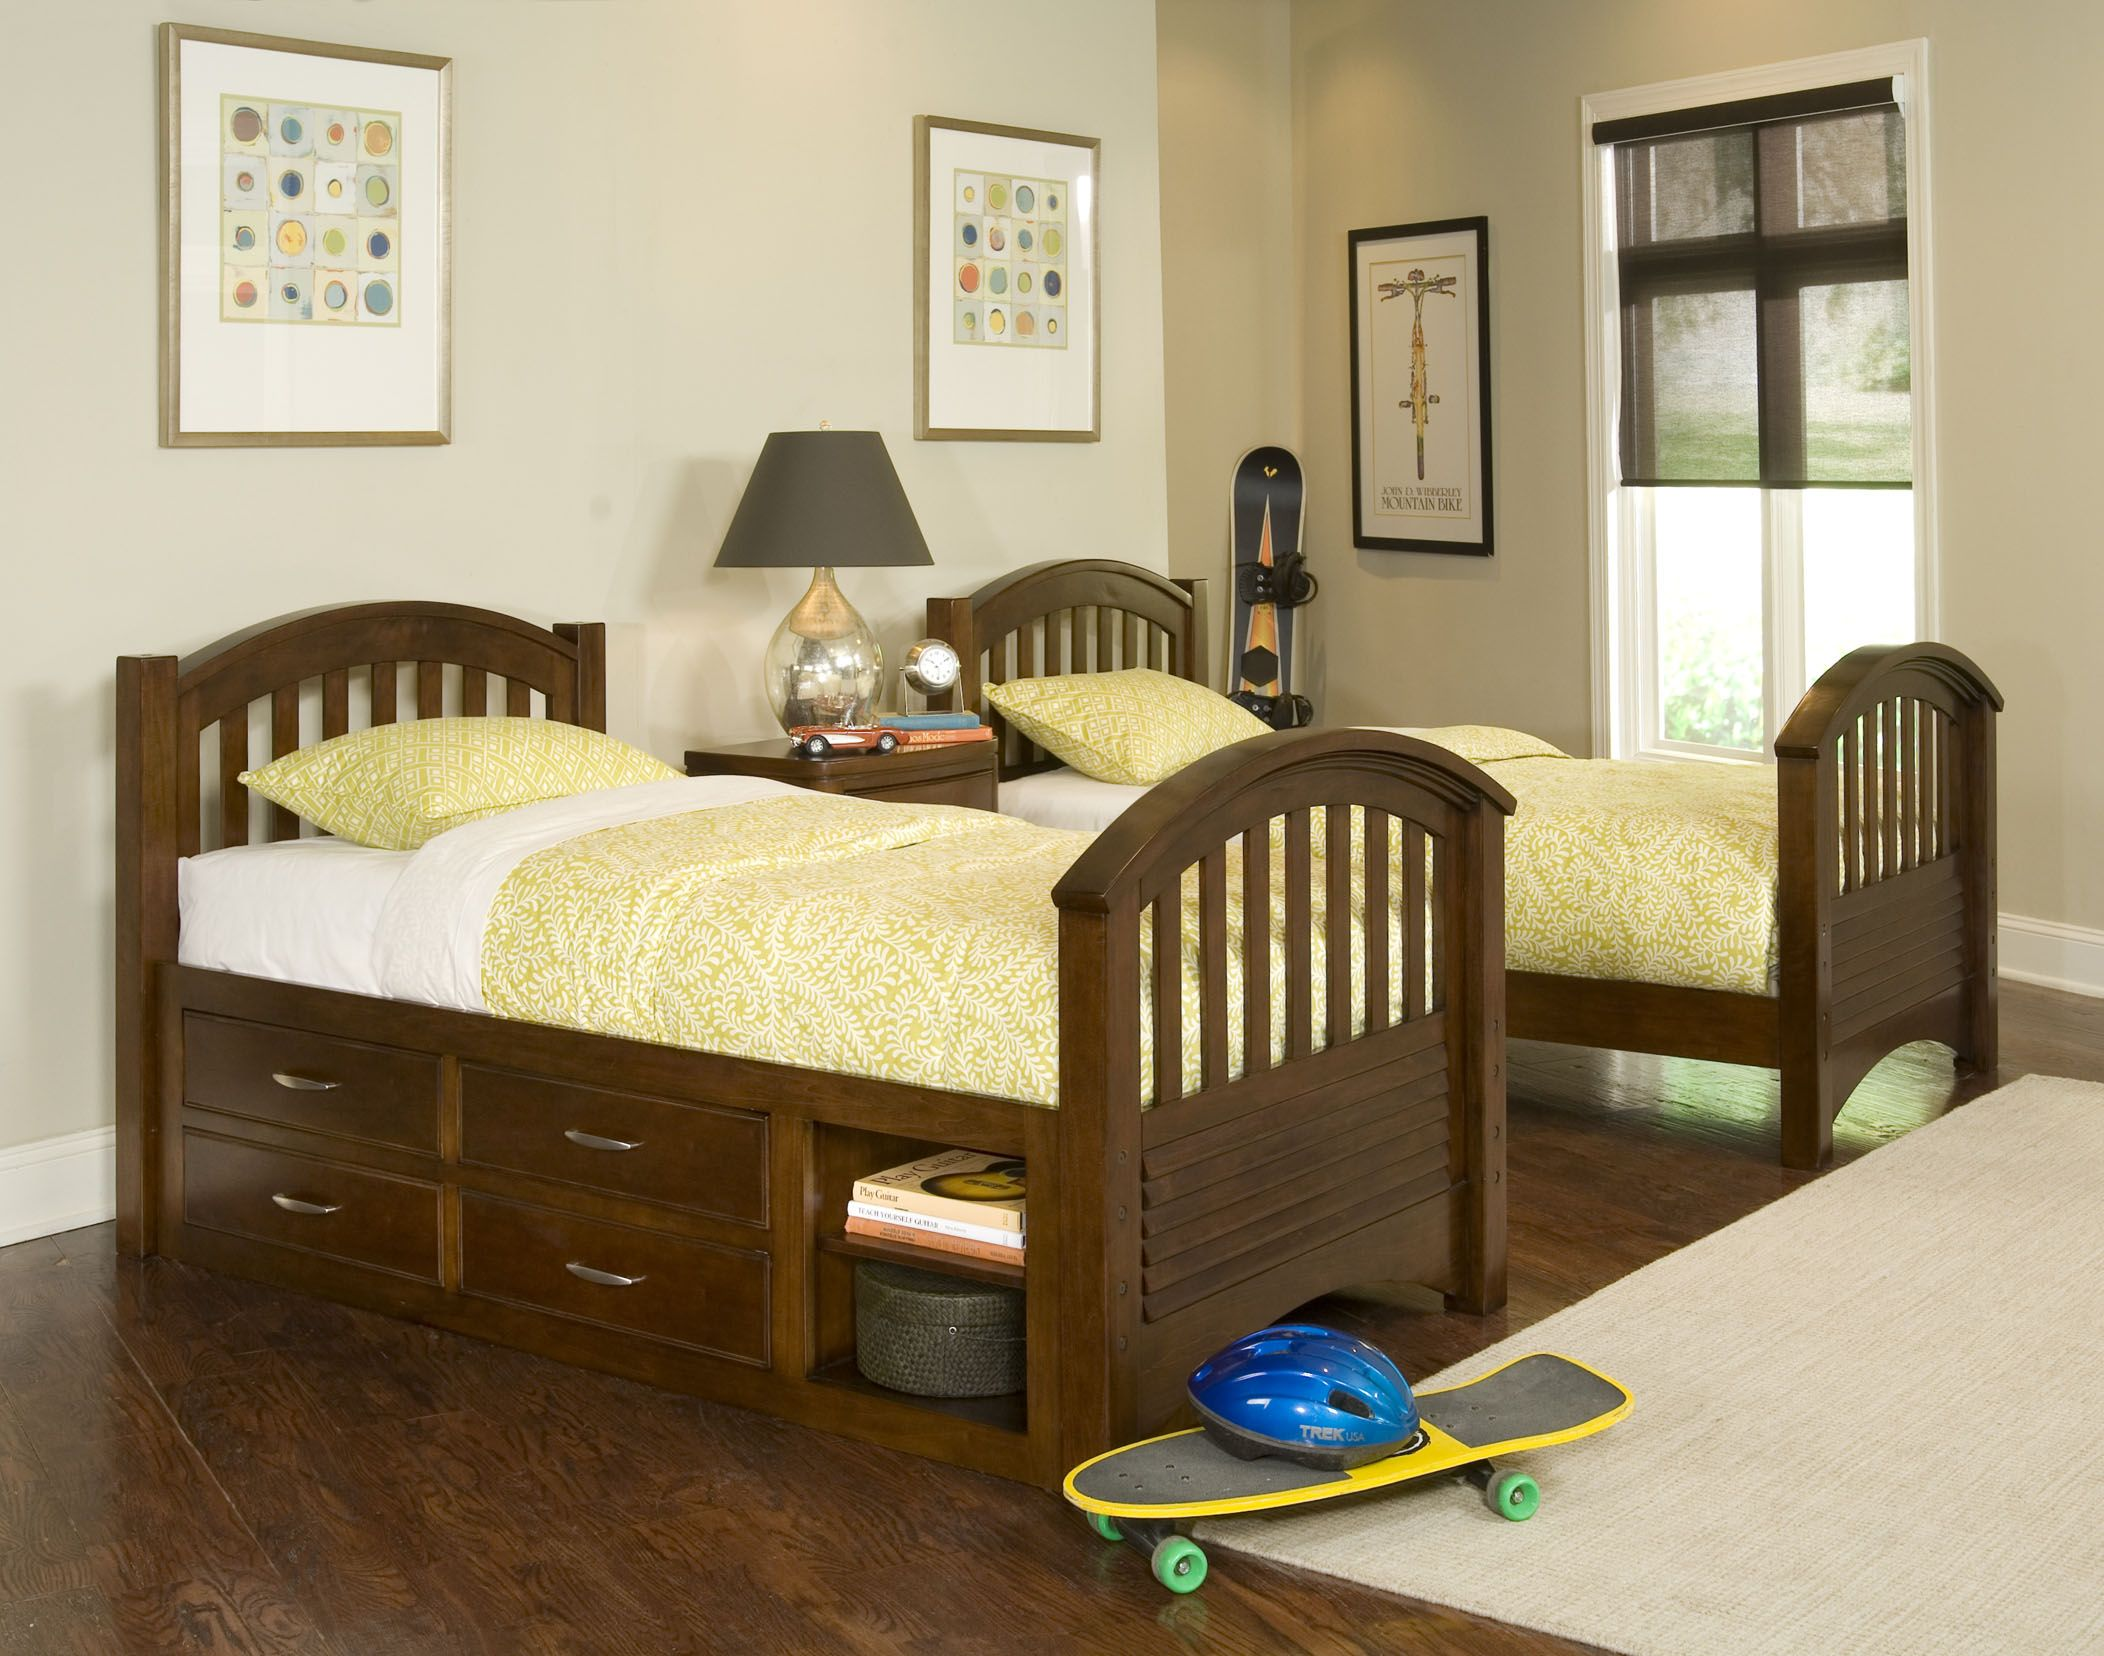 Best Traditional Wooden Twin Bed For Boys And Simple Nightstand 640 x 480